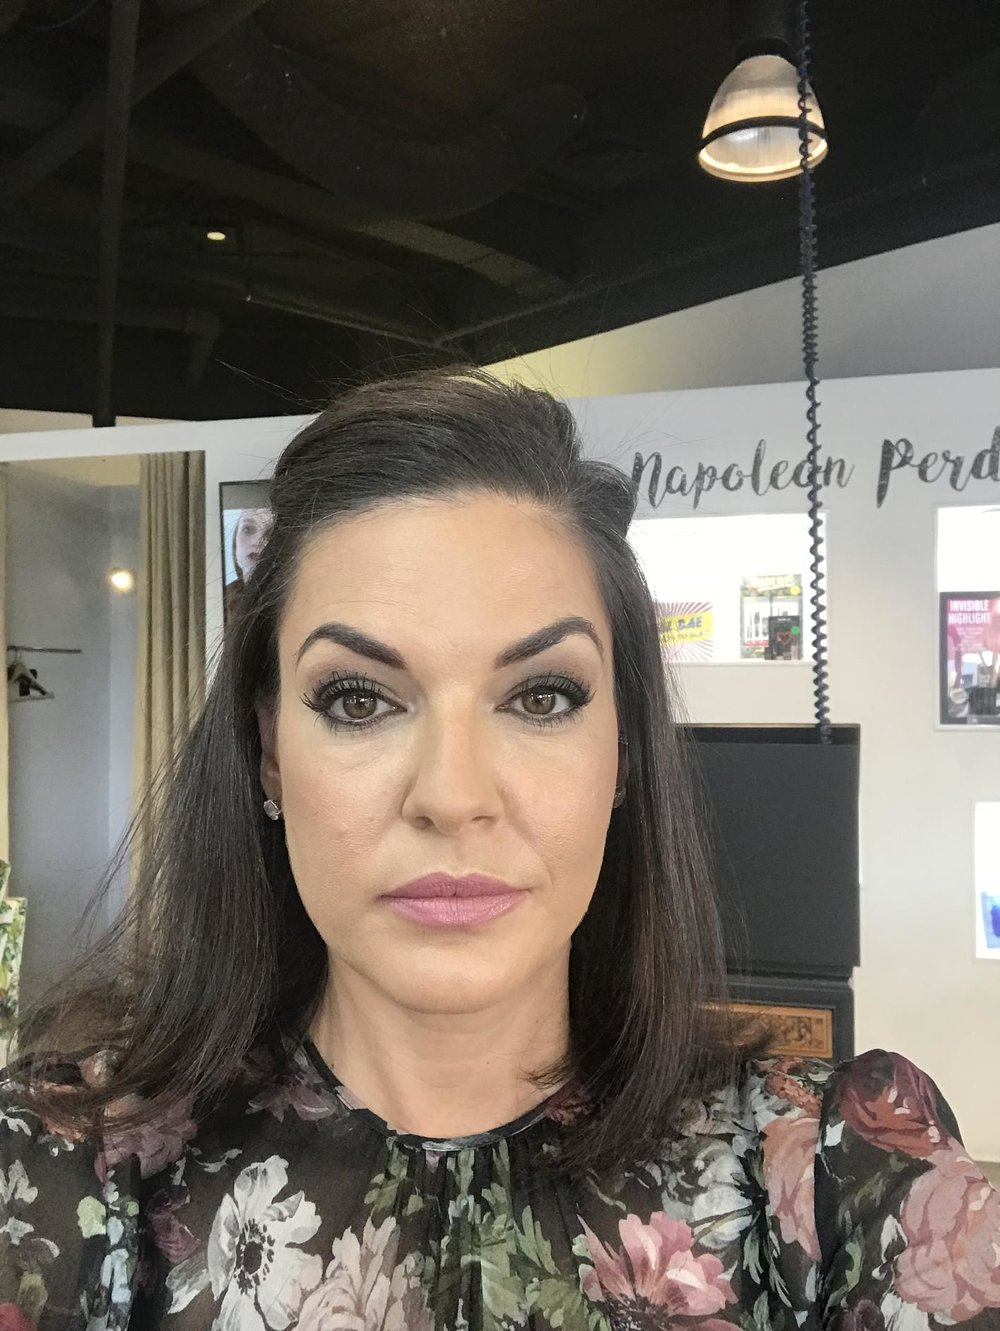 Nicole O'Neil after makeup at Napoleon Perdis